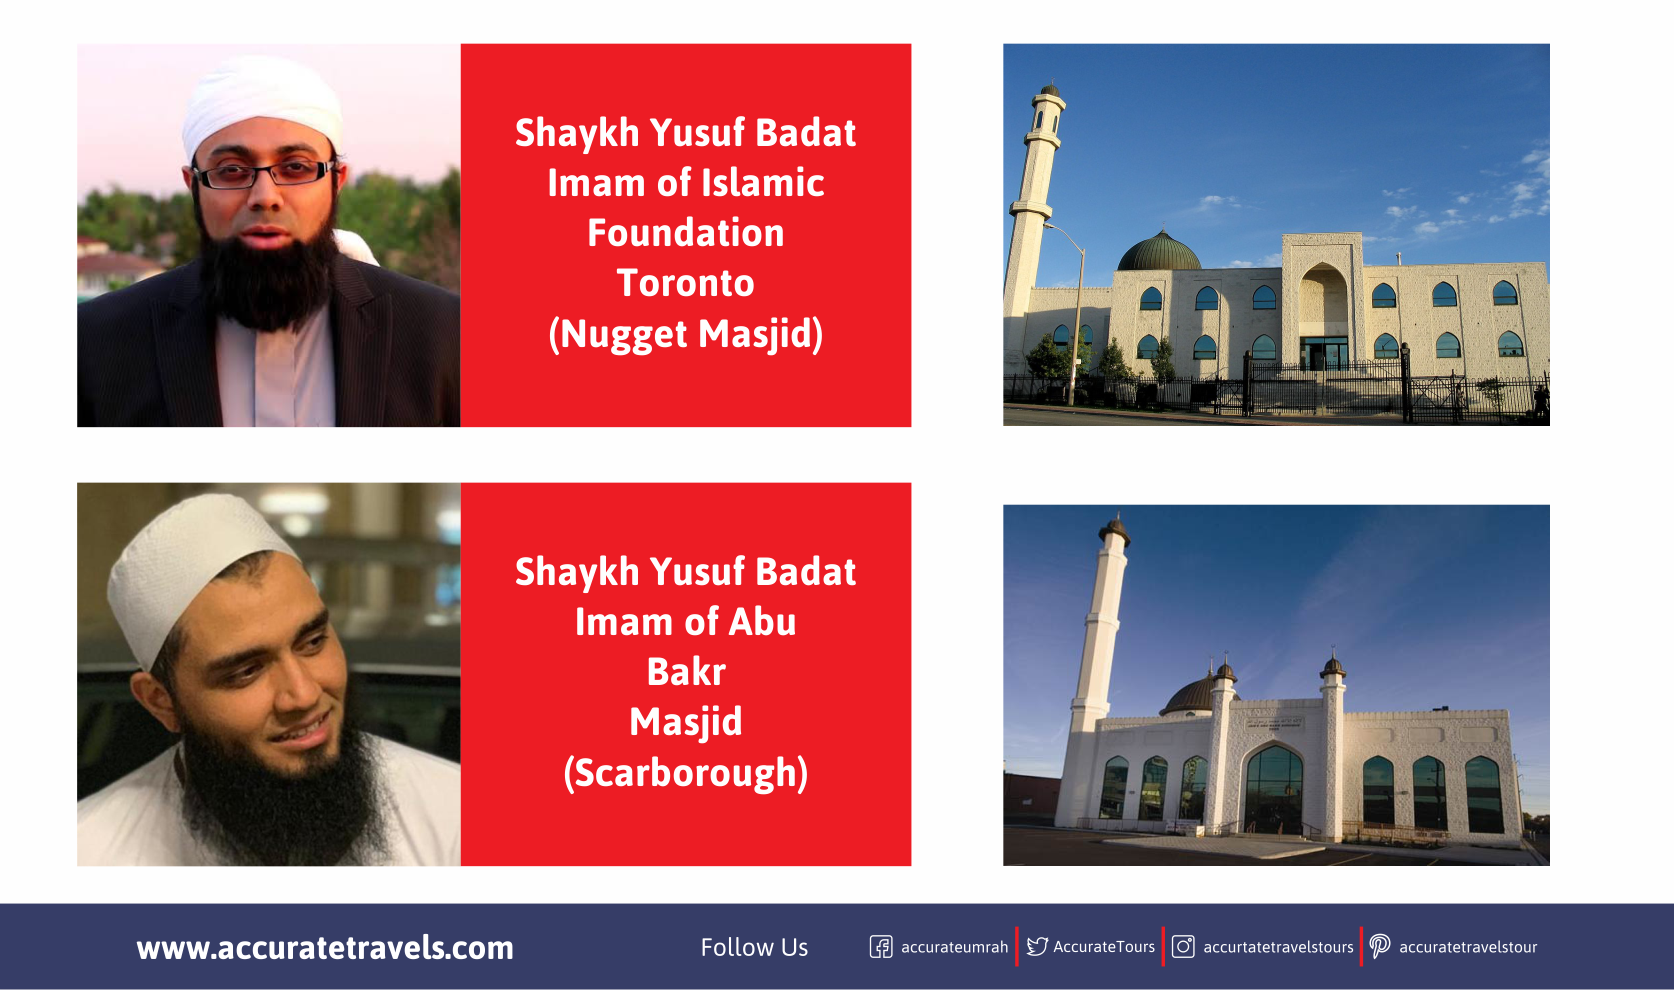 Shaykh-Yusuf-Badat-Shaykh-Shoaib-Wardak-Blog-Accurate-Travels-Tours-INC